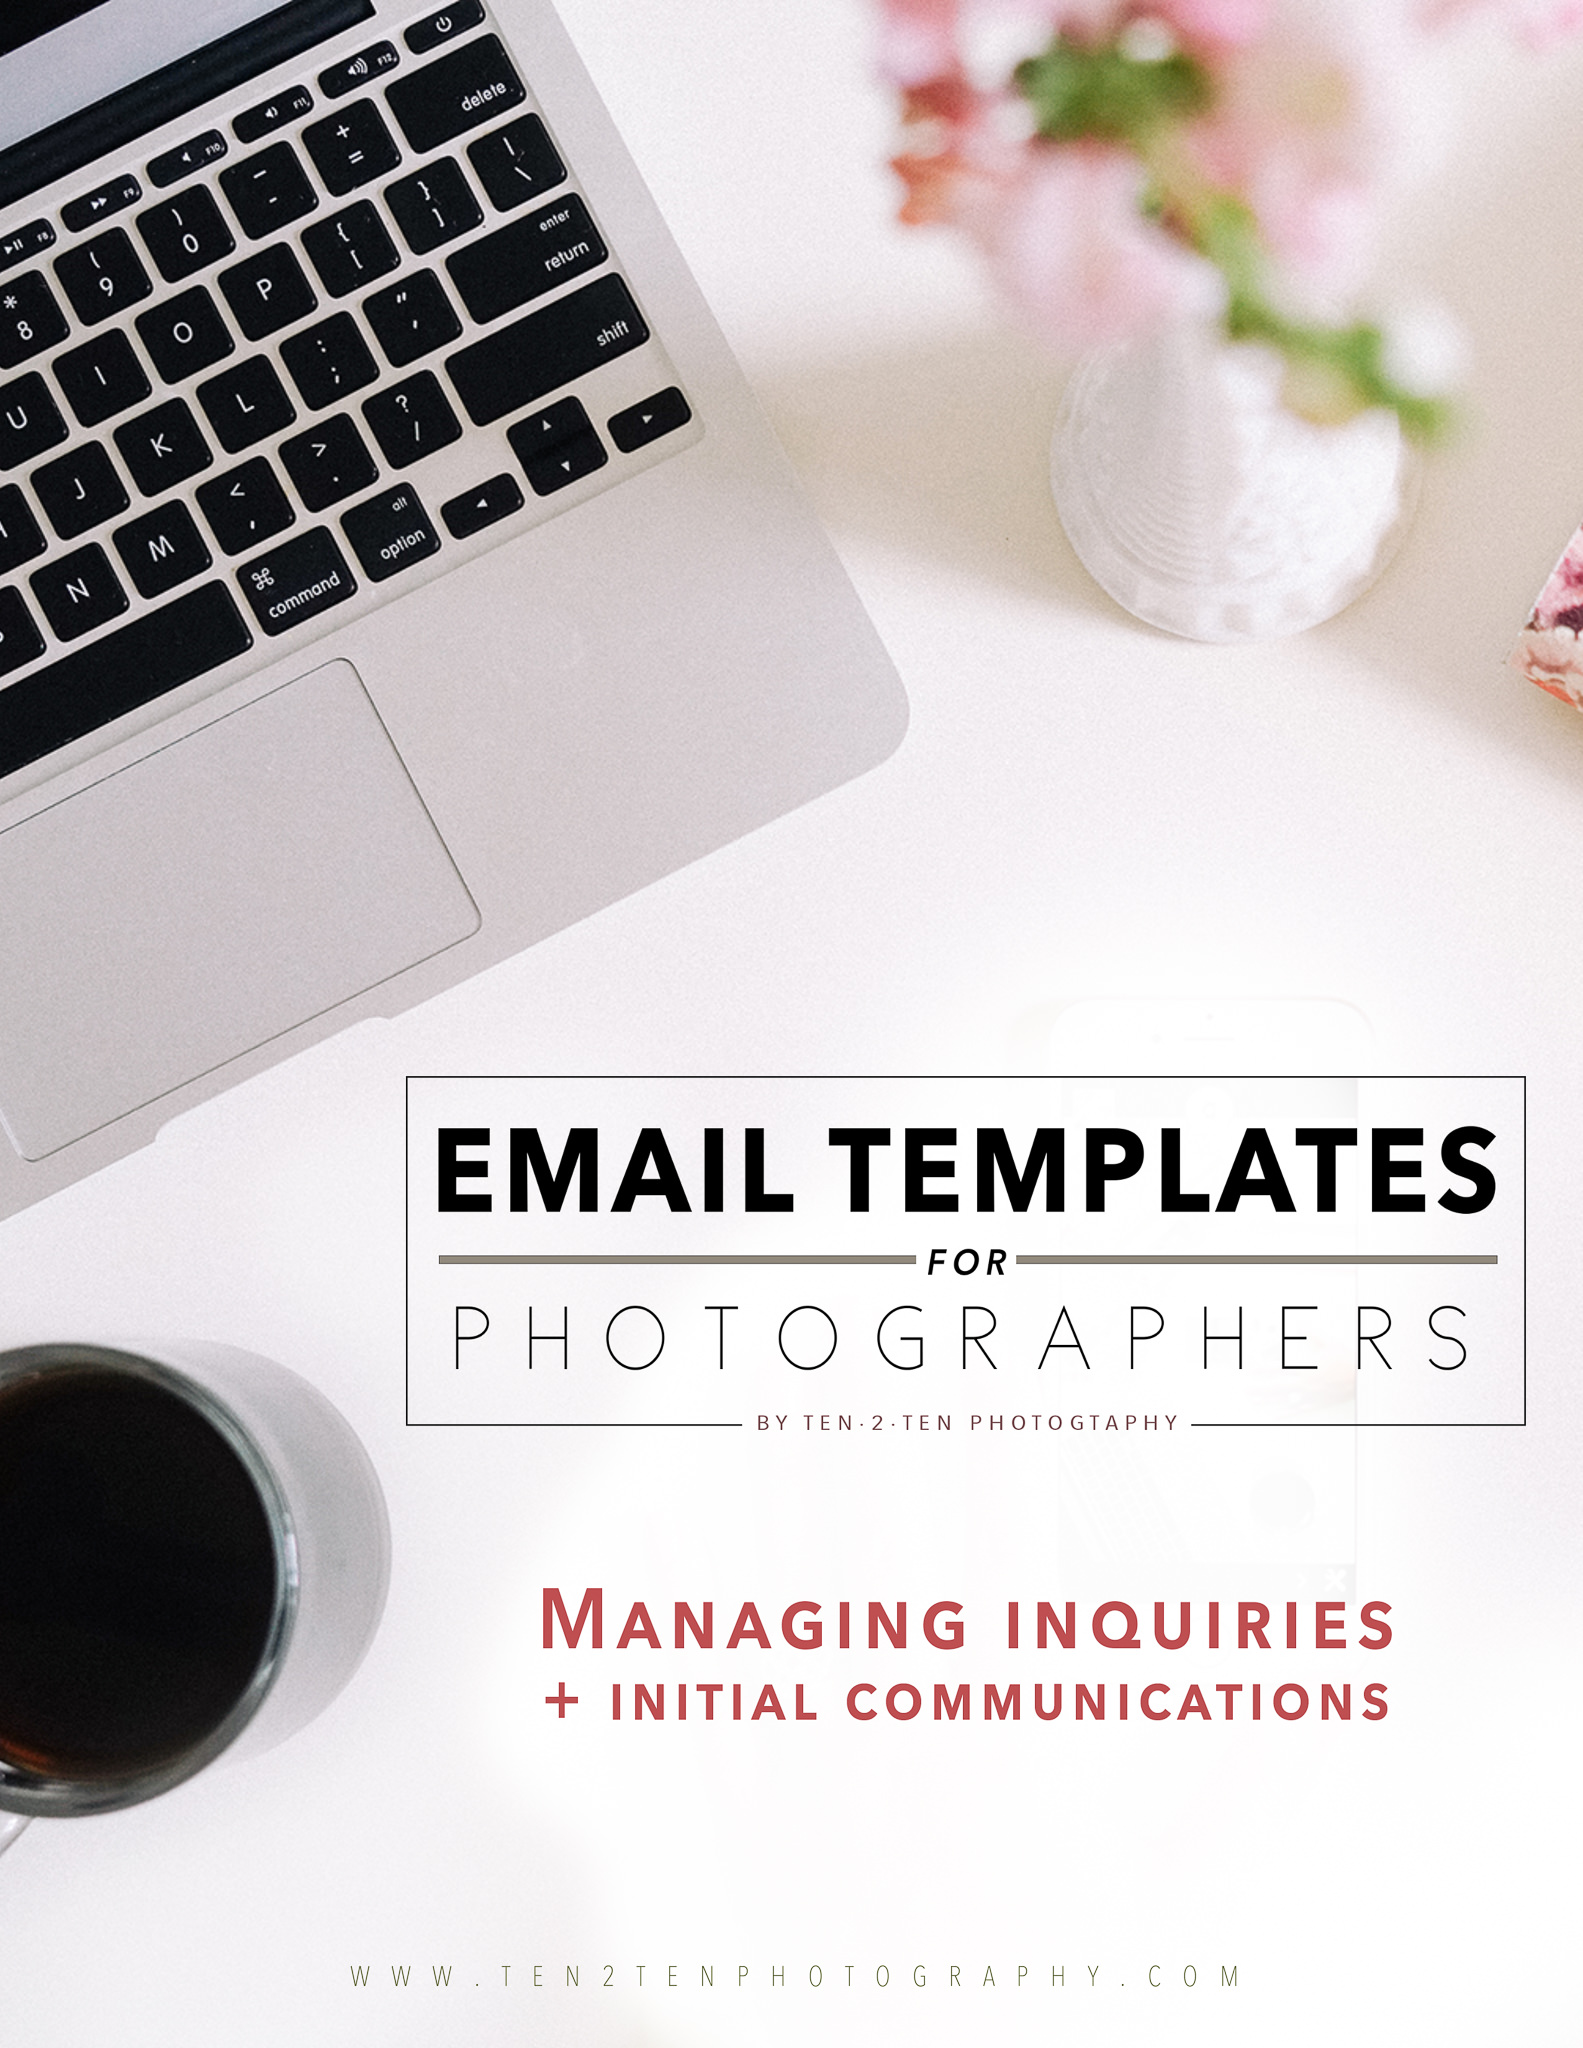 email templates for photographers 8 - Email Templates for Photographers - Managing Inquiries + Initial Contacts